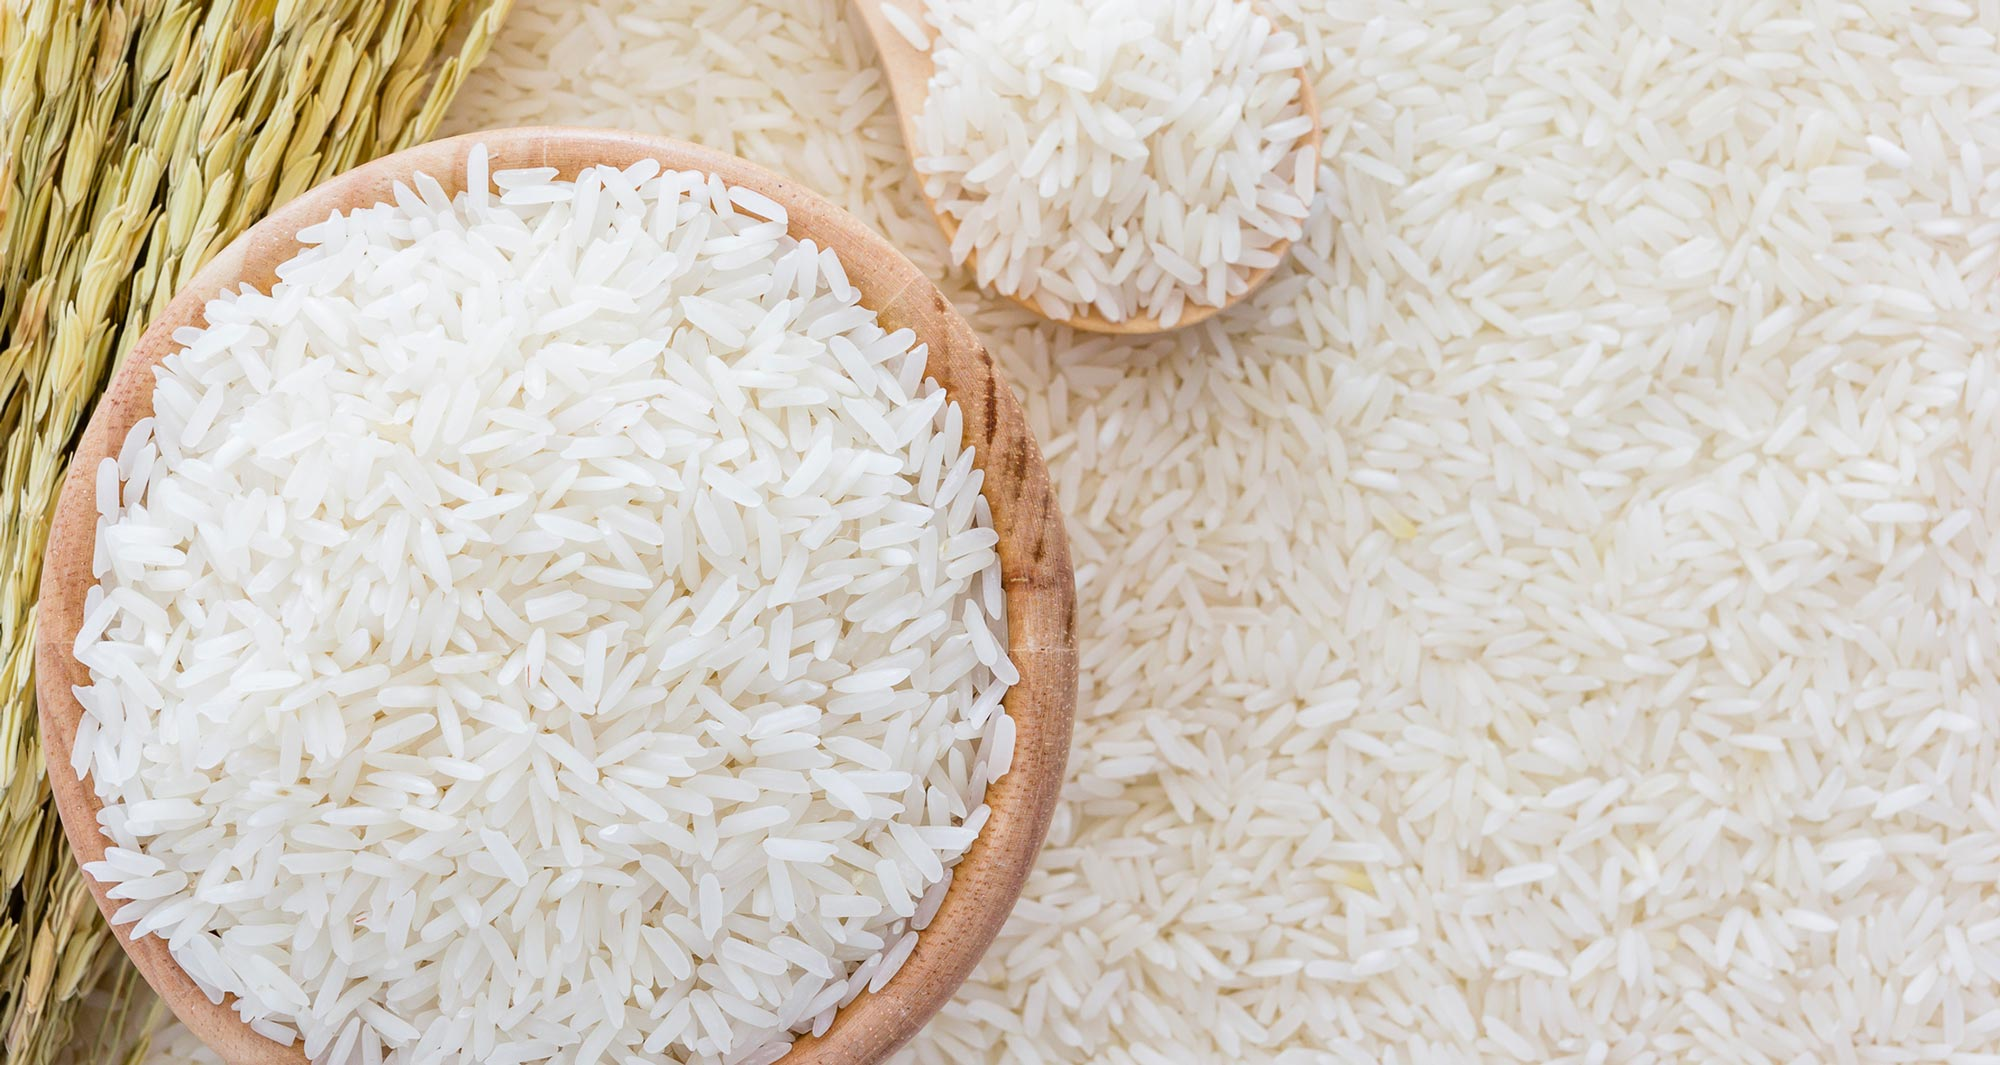 arsenic in rice everything you need to know to stay safe